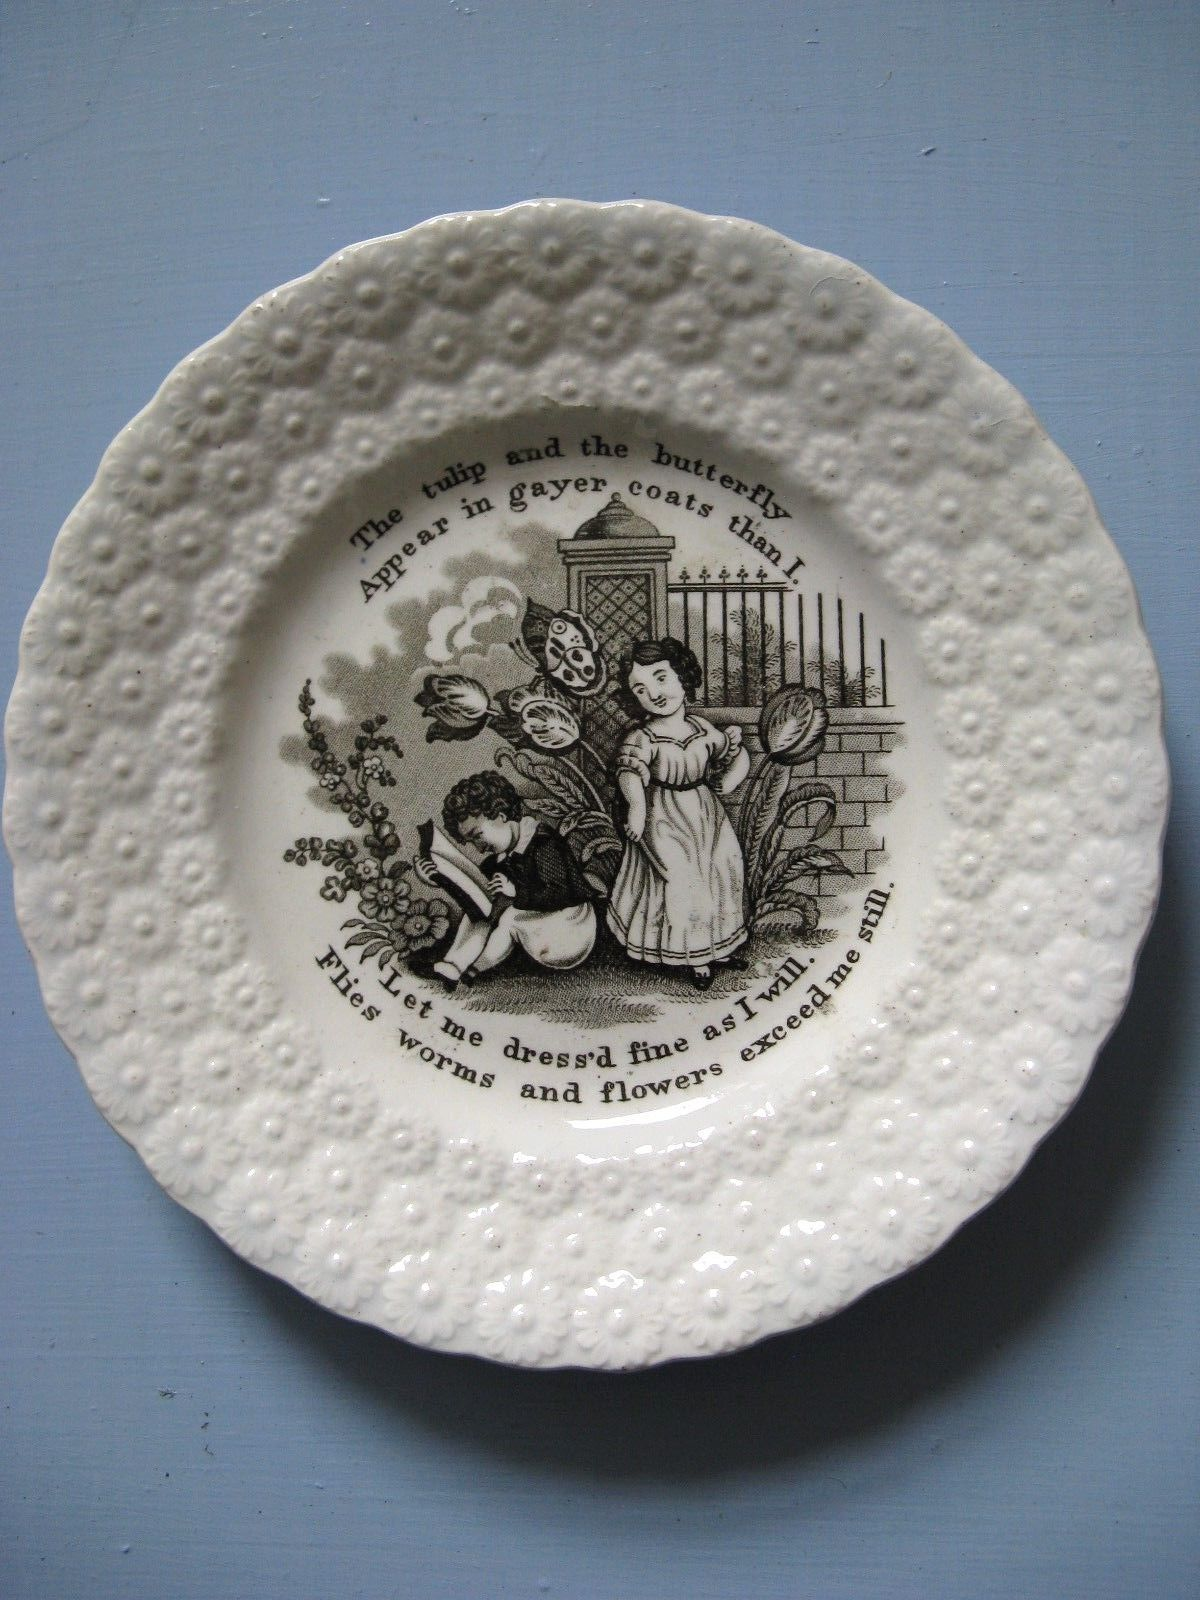 Childrens pottery plates x 3 Victorian C1850 | eBay & Childrens pottery plates x 3 Victorian C1850 | eBay | Victorian ...